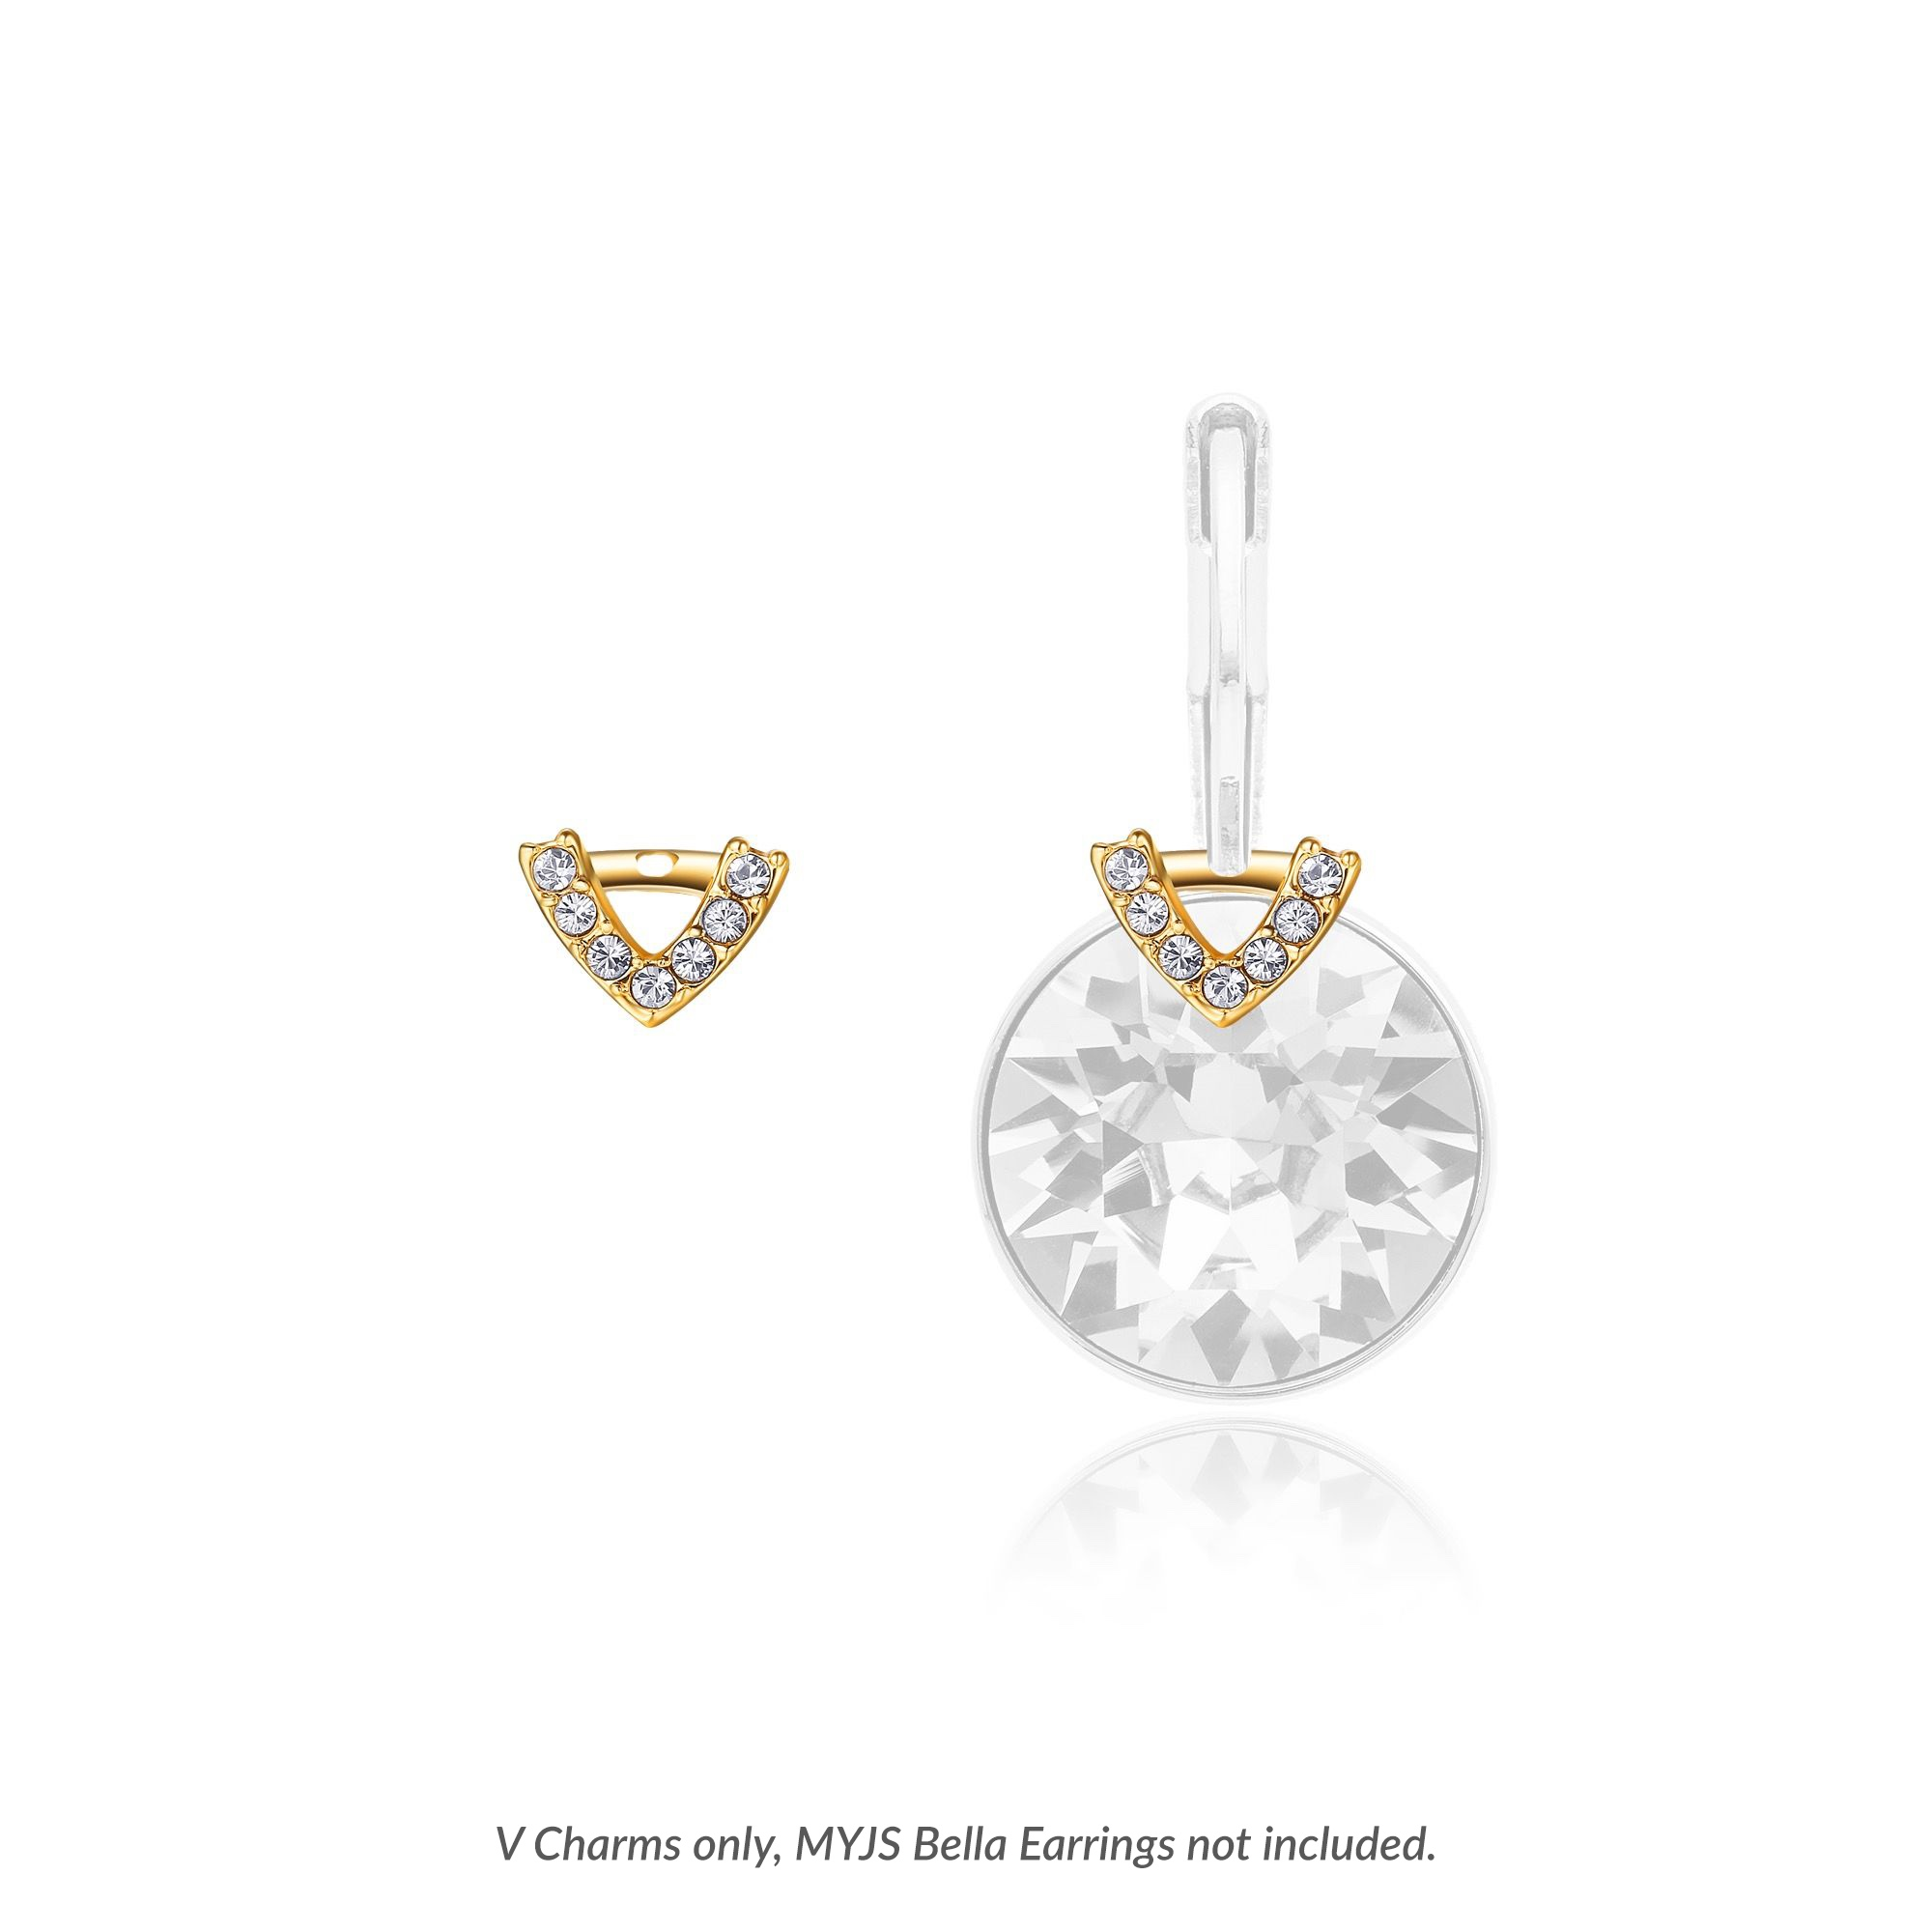 a6abf9e8c037 Bella 4 Carat Earrings V Charms with Swarovski Crystals Gold Plated ...